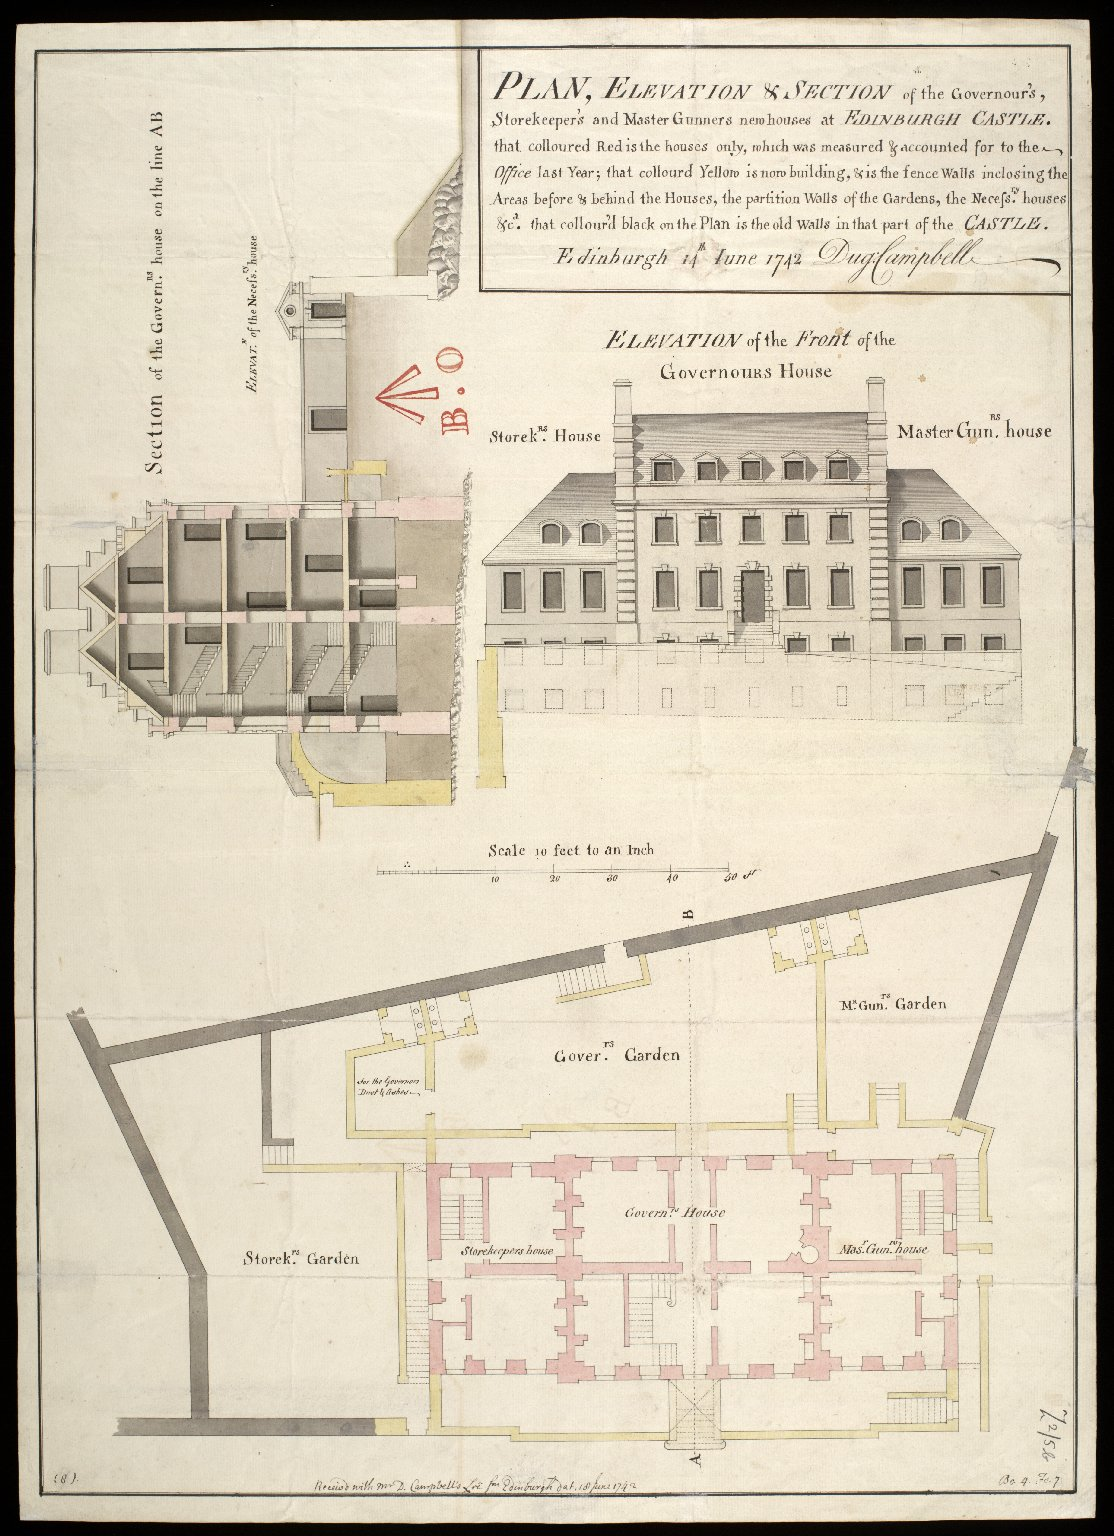 Plan, elevation & section of the Governour's, storekeeper's and master gunners new houses at Edinburgh Castle : Edinburgh 14th June 1742 [1 of 1]